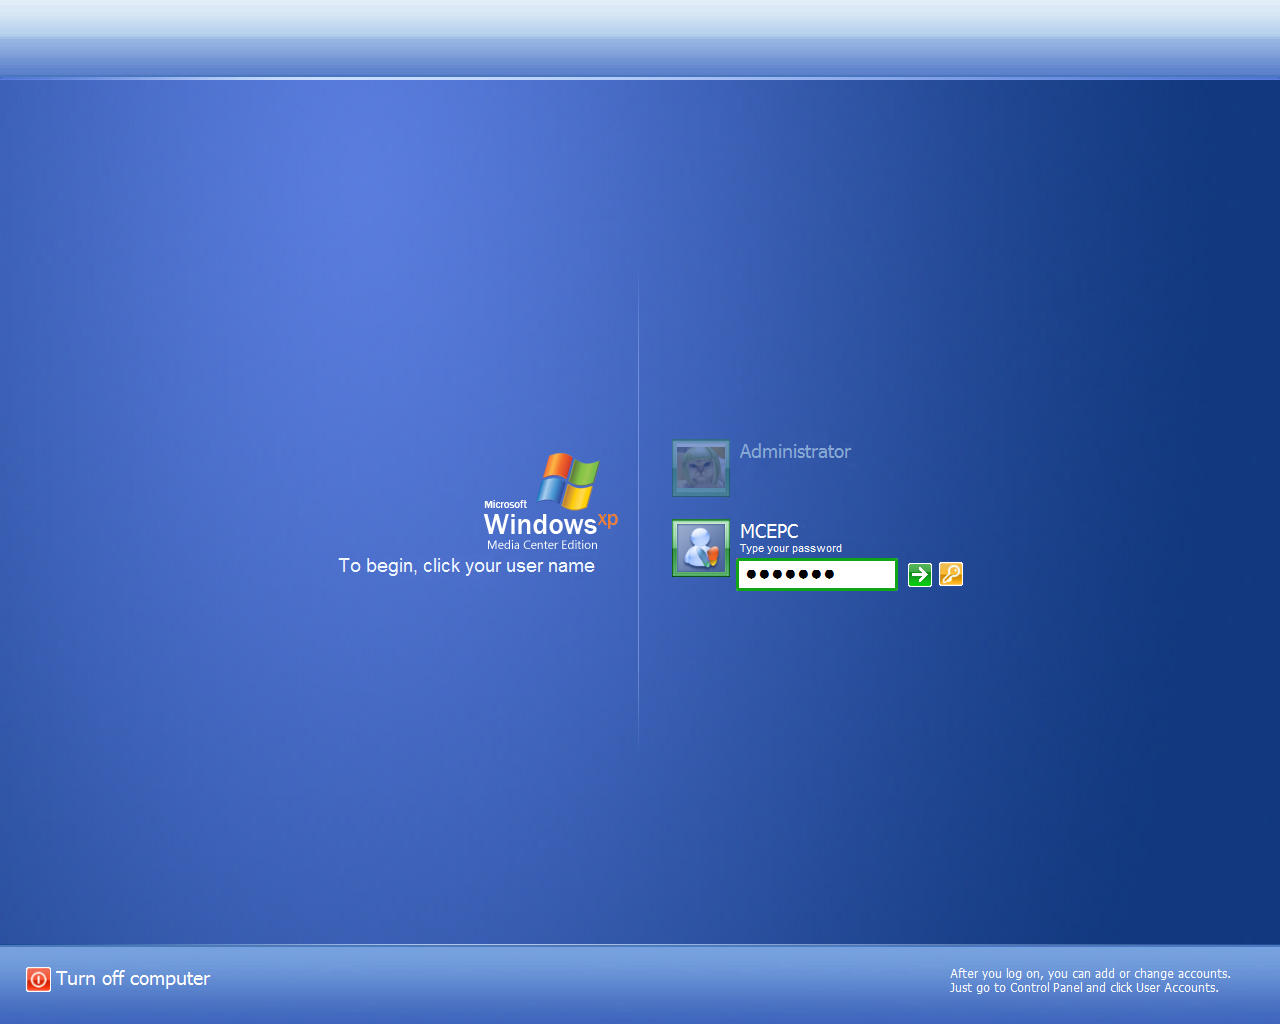 Windows XP MediaCenter Edition by thecat2000 on DeviantArt